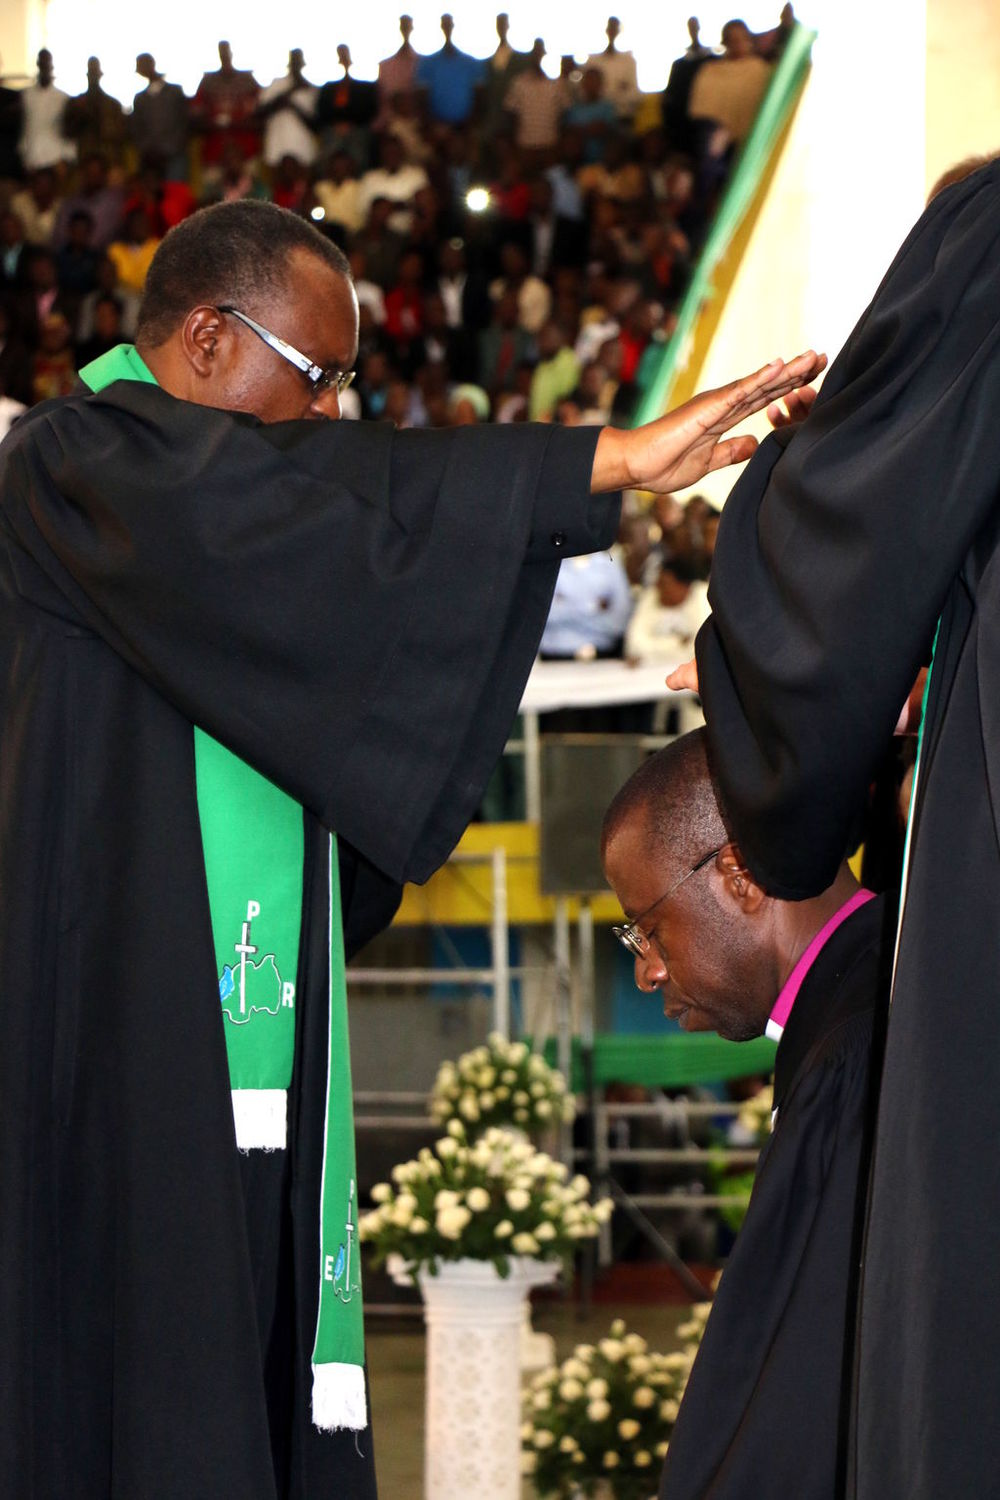 Rev. Dr. Pascal being installed as a leader by the Presbyterian Church of Rwanda